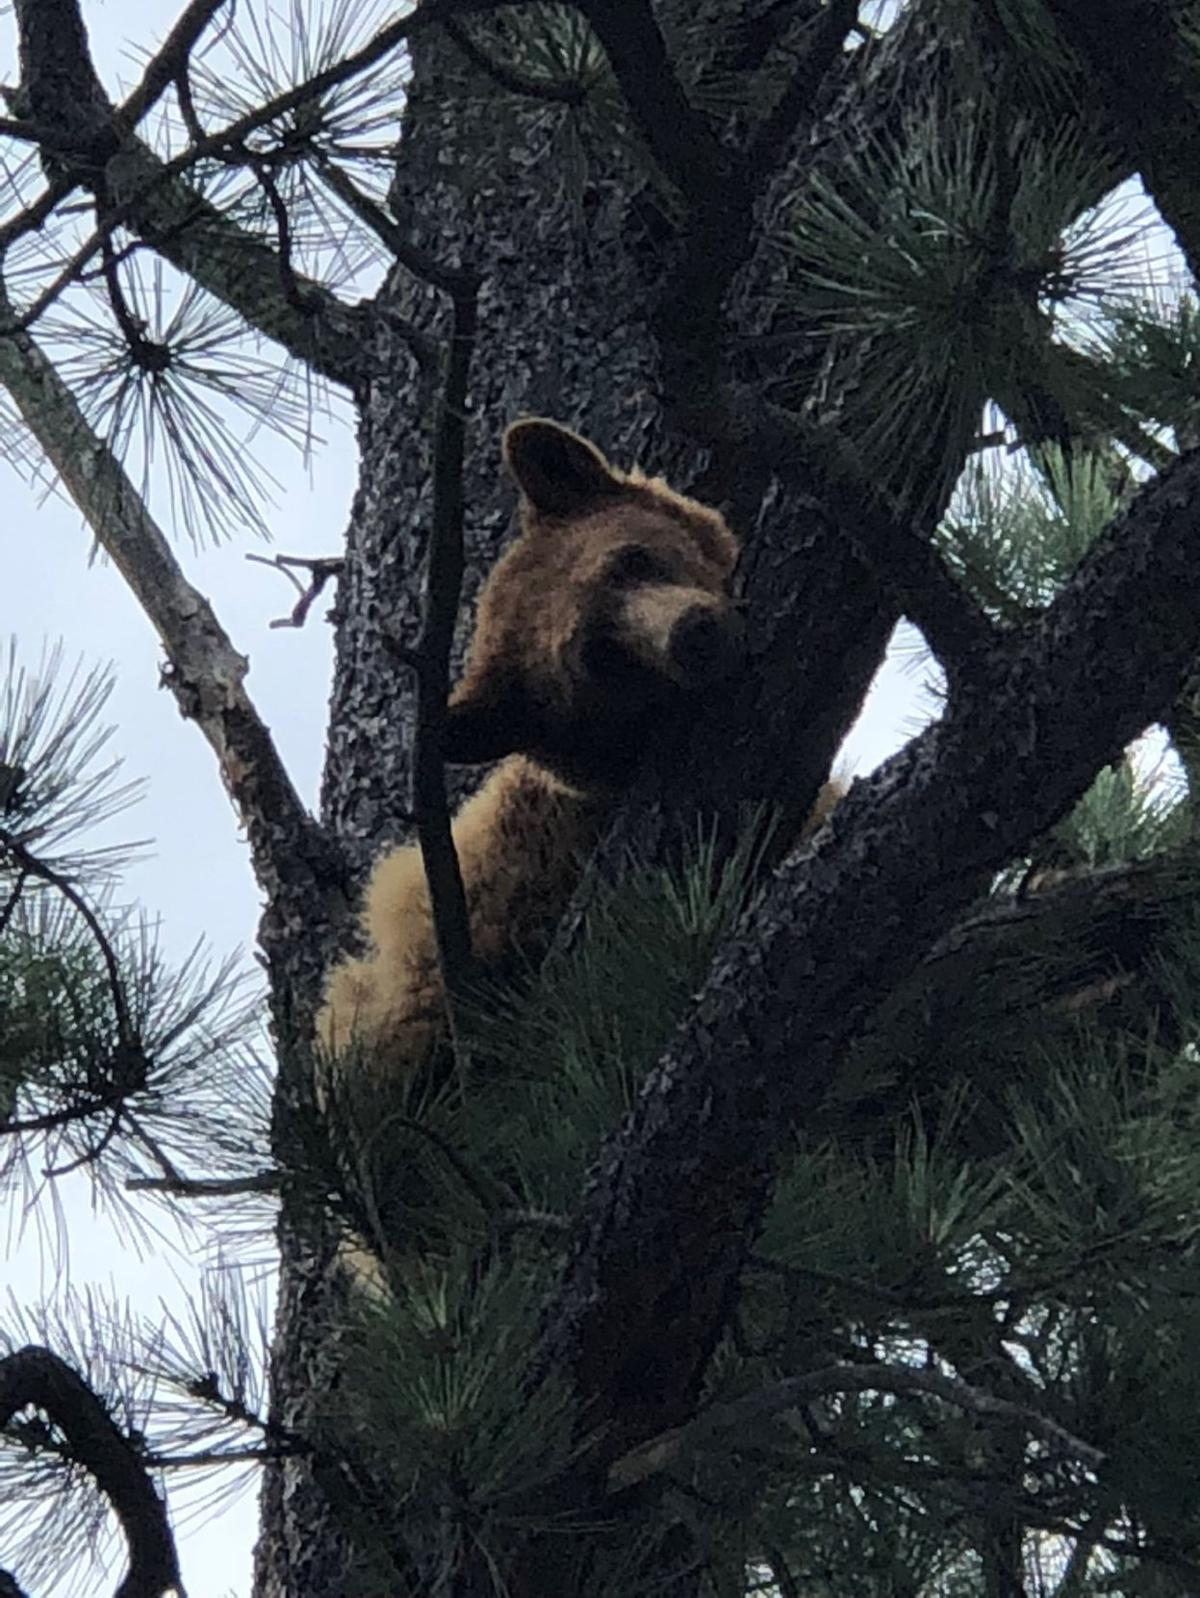 Black bear found on campus